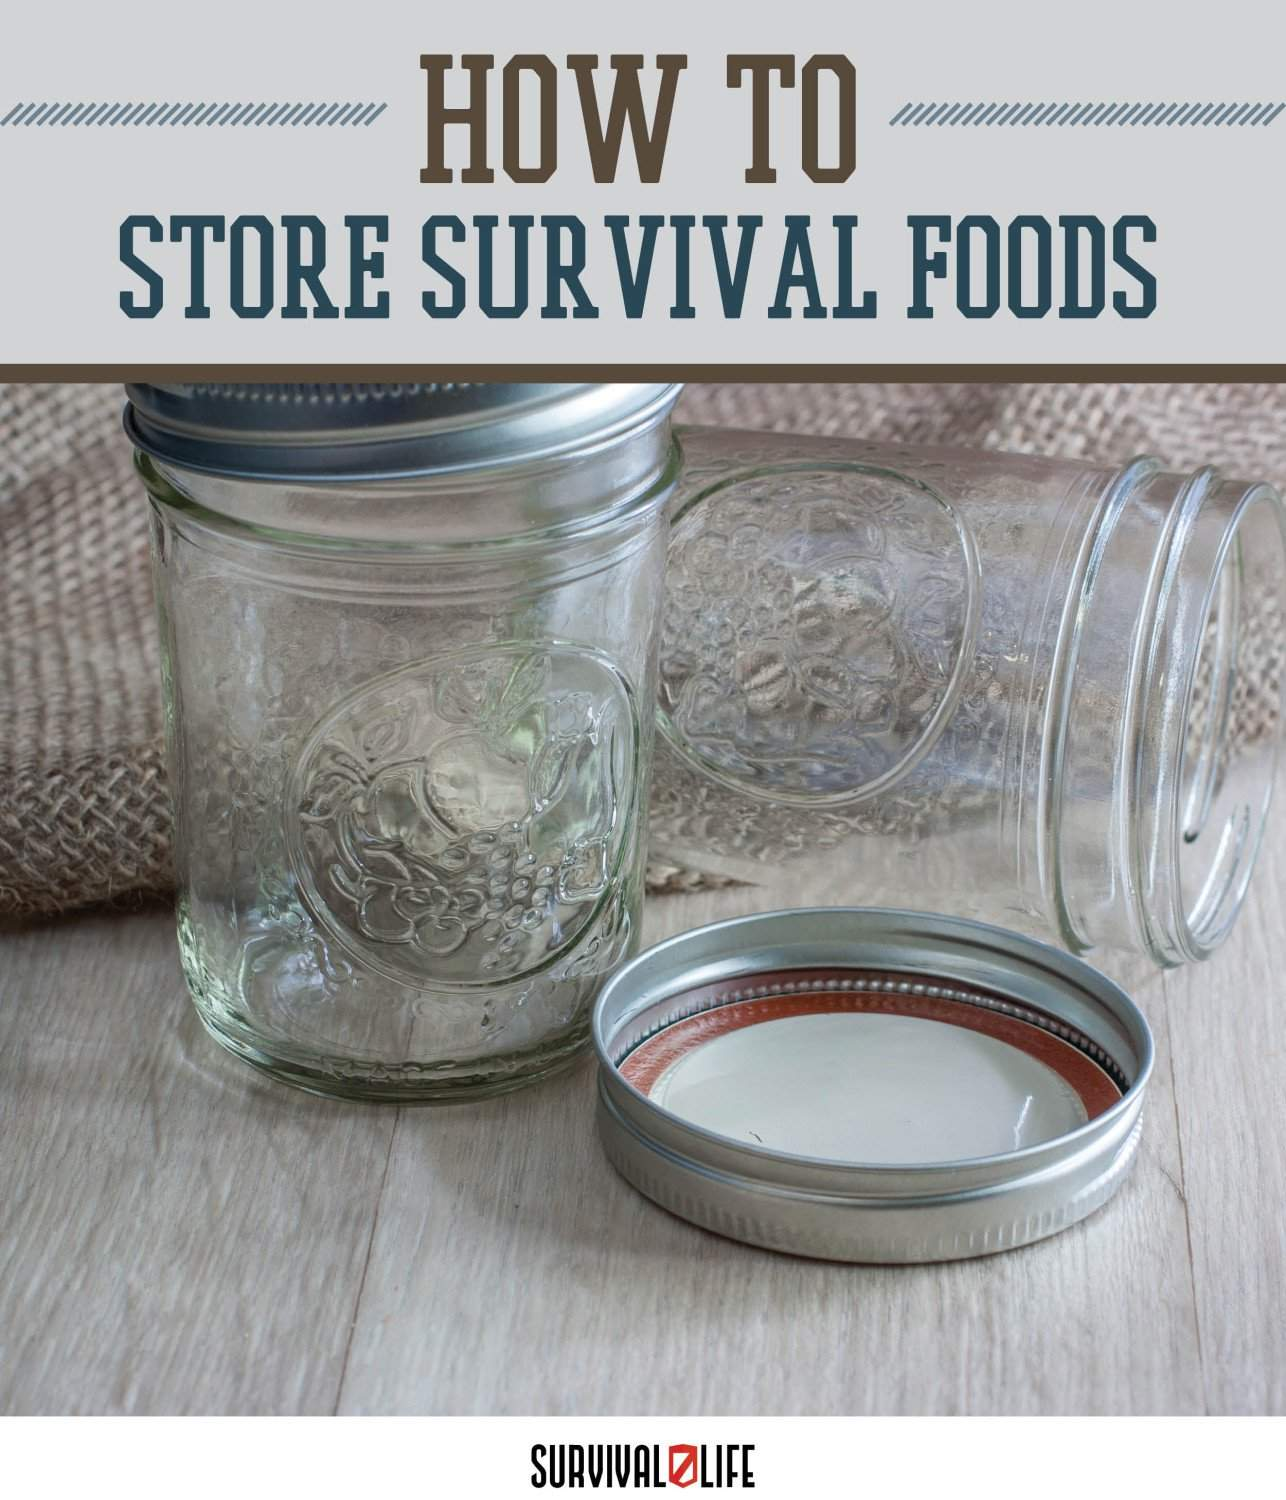 8 Survival Foods and How To Store Them by Survival Life at http://survivallife.staging.wpengine.com/2015/05/20/8-survival-foods-and-how-to-store-them